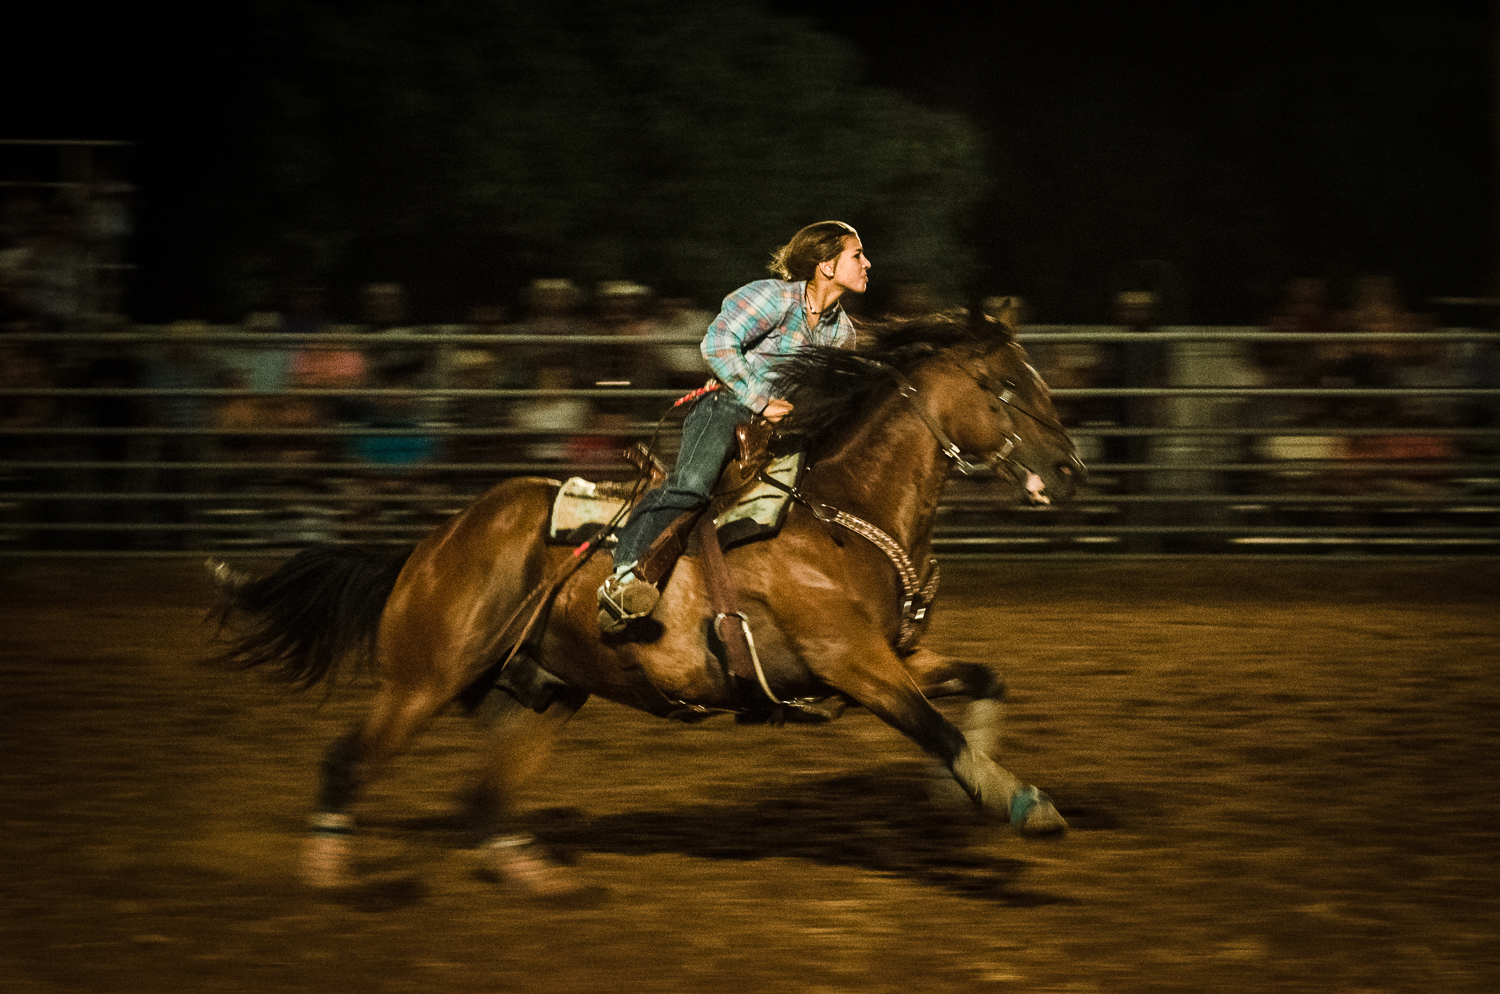 © Ayash Basu. Barrel racing is the primary competitive rodeo event for women, where a cloverleaf pattern is completed around three barrels for the fastest time. Johnson City 2017.